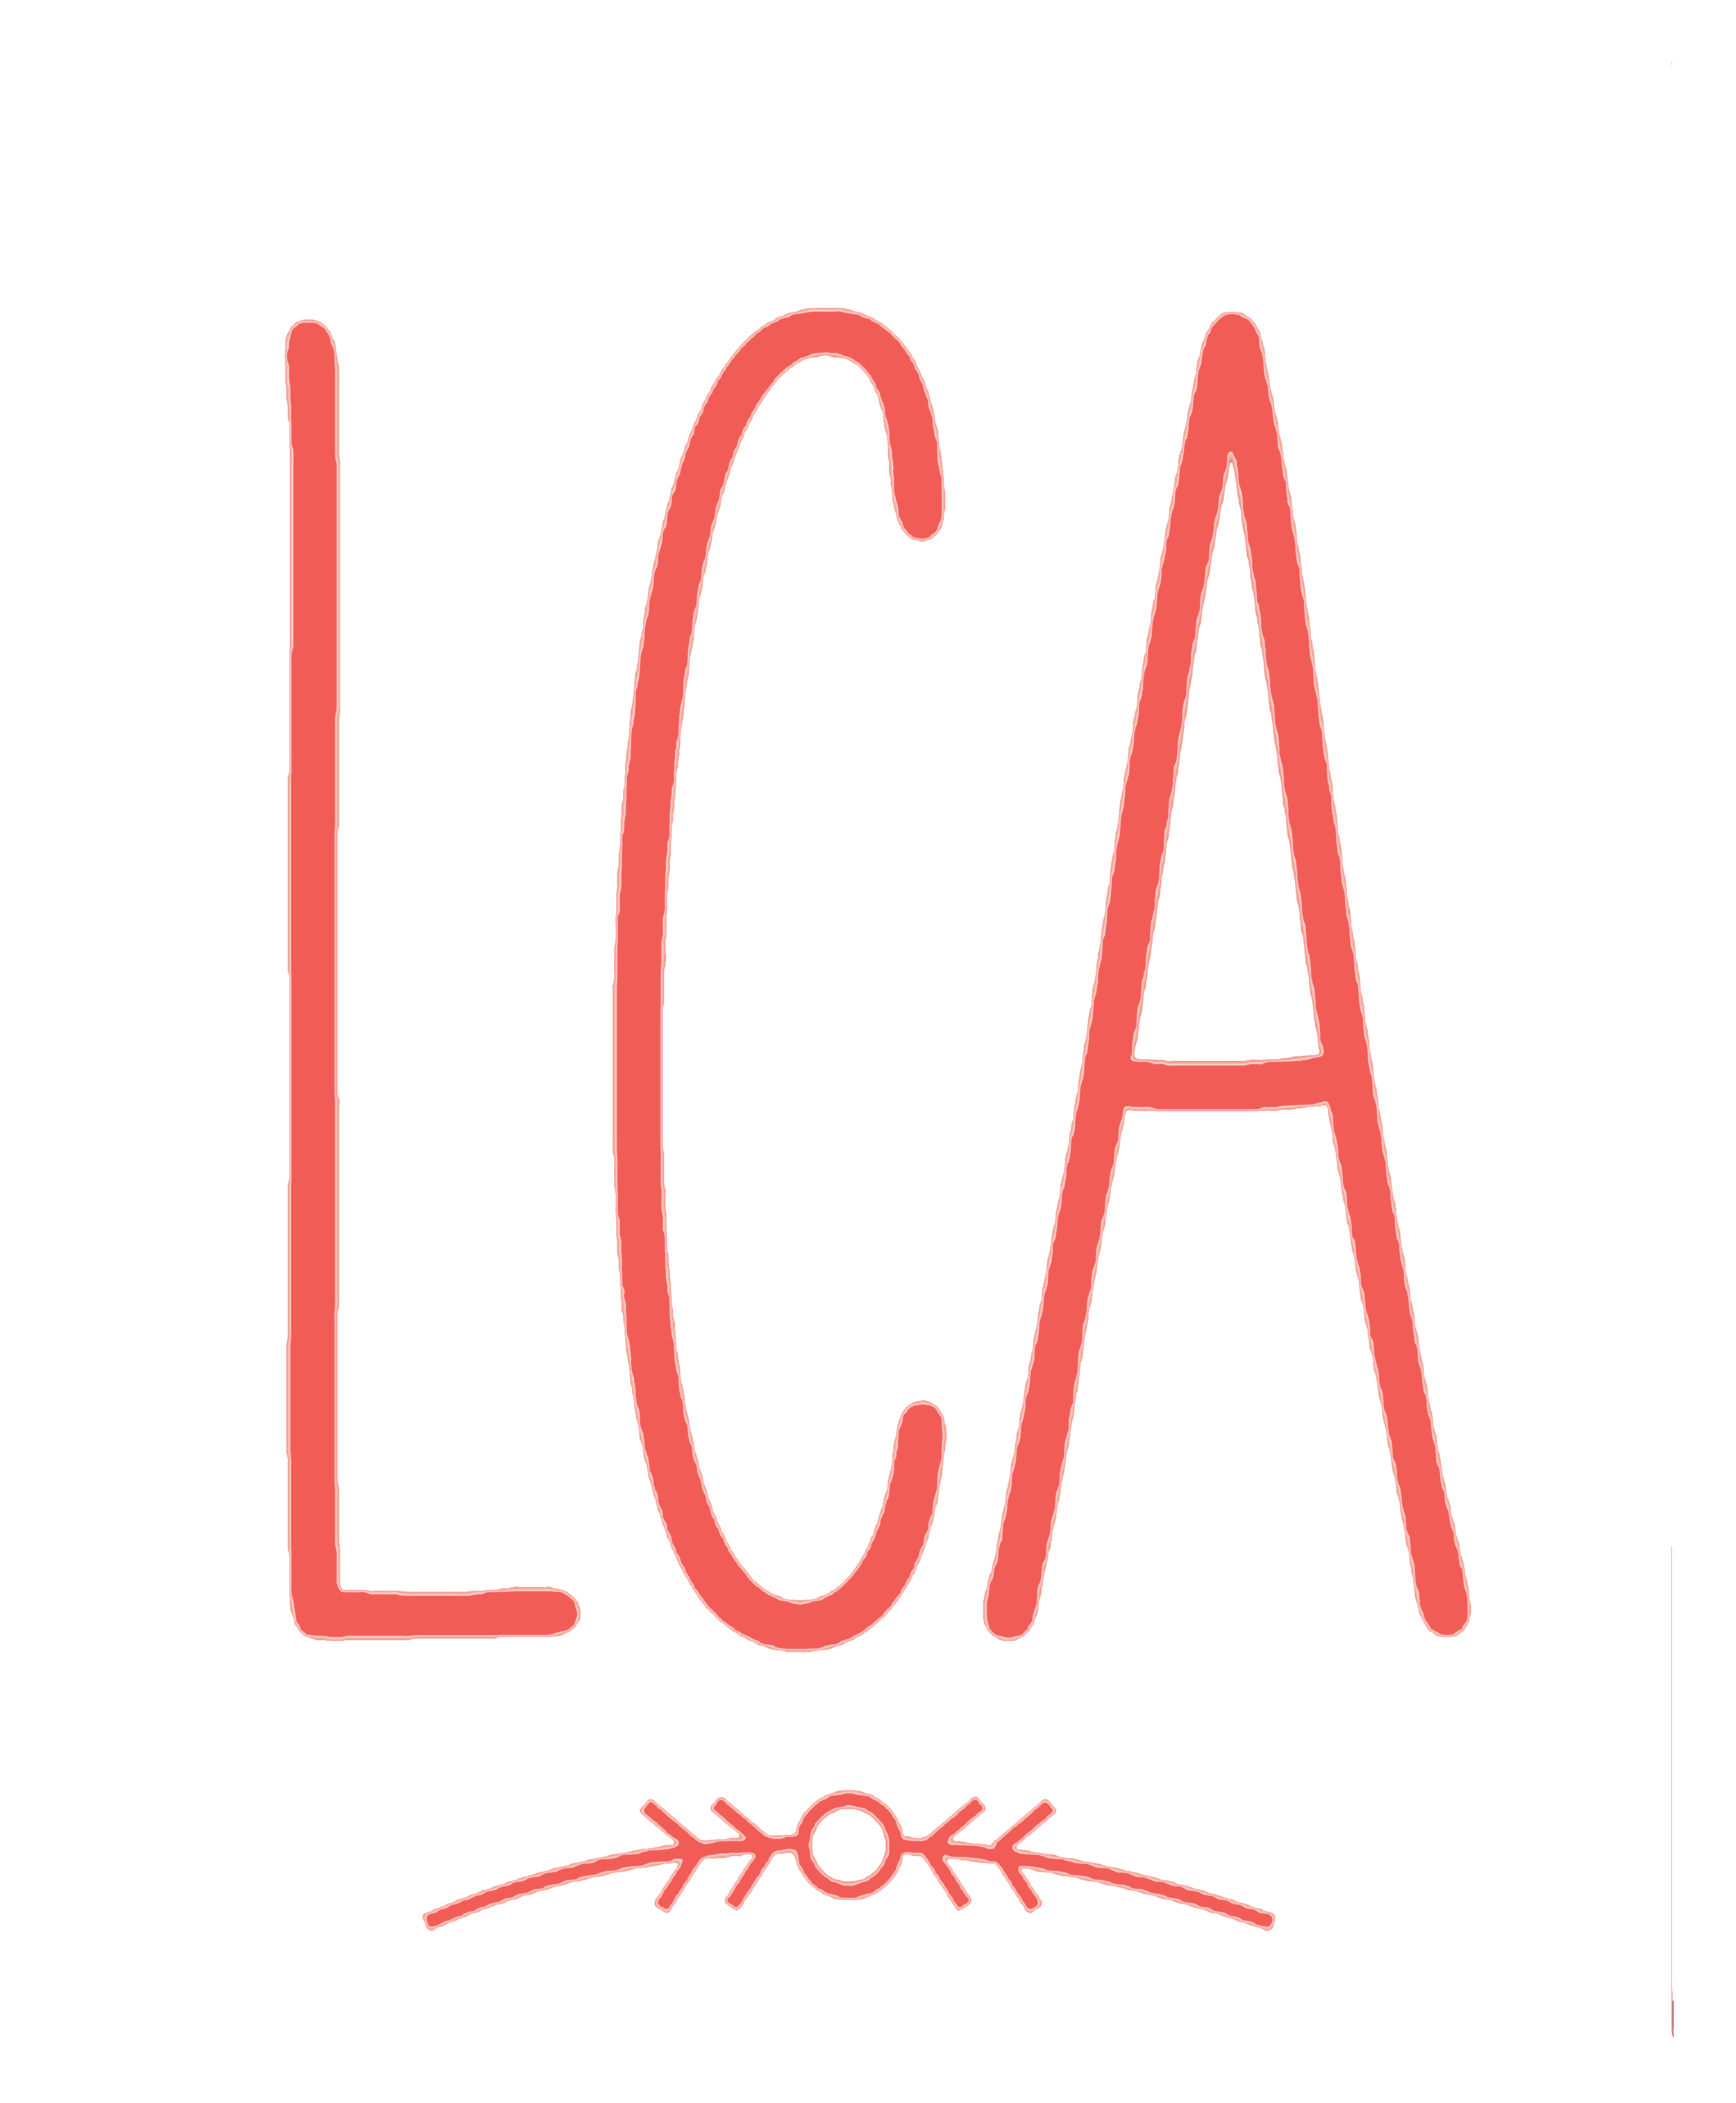 LCA transparent.png